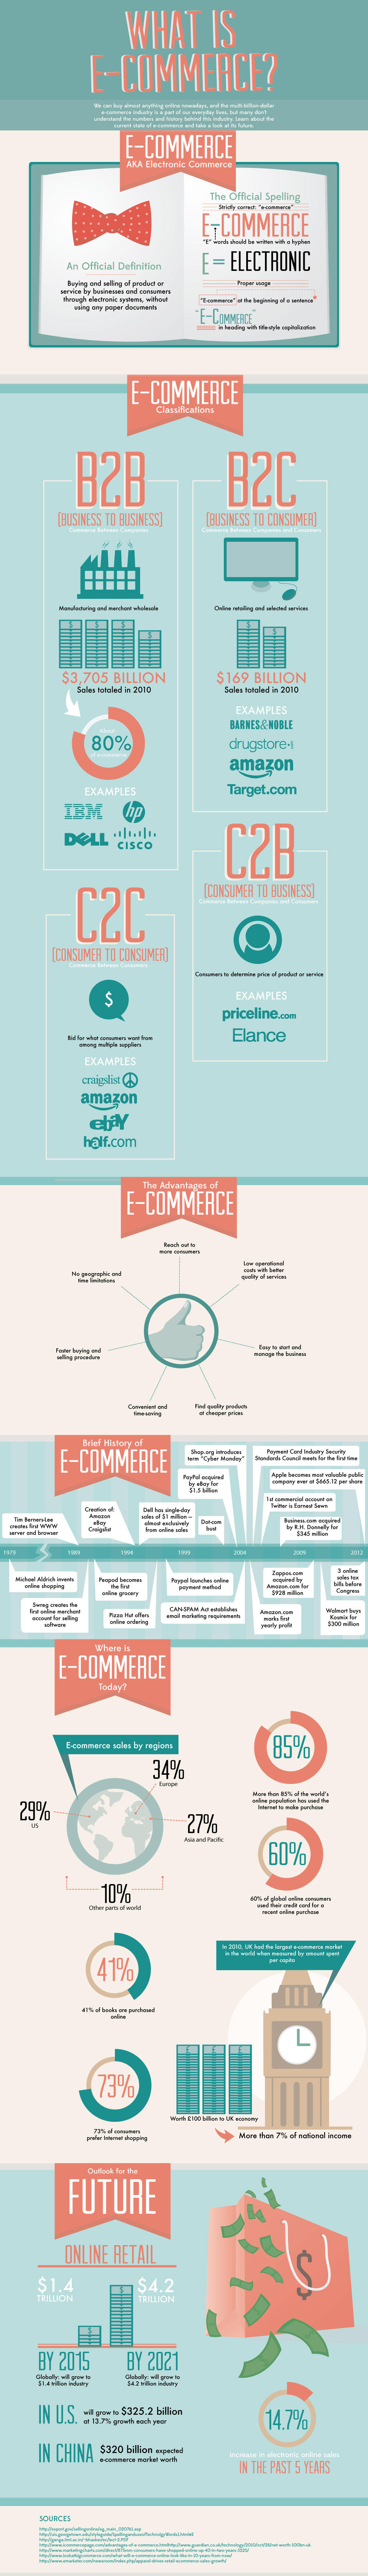 What Is E-Commerce? - Infographic